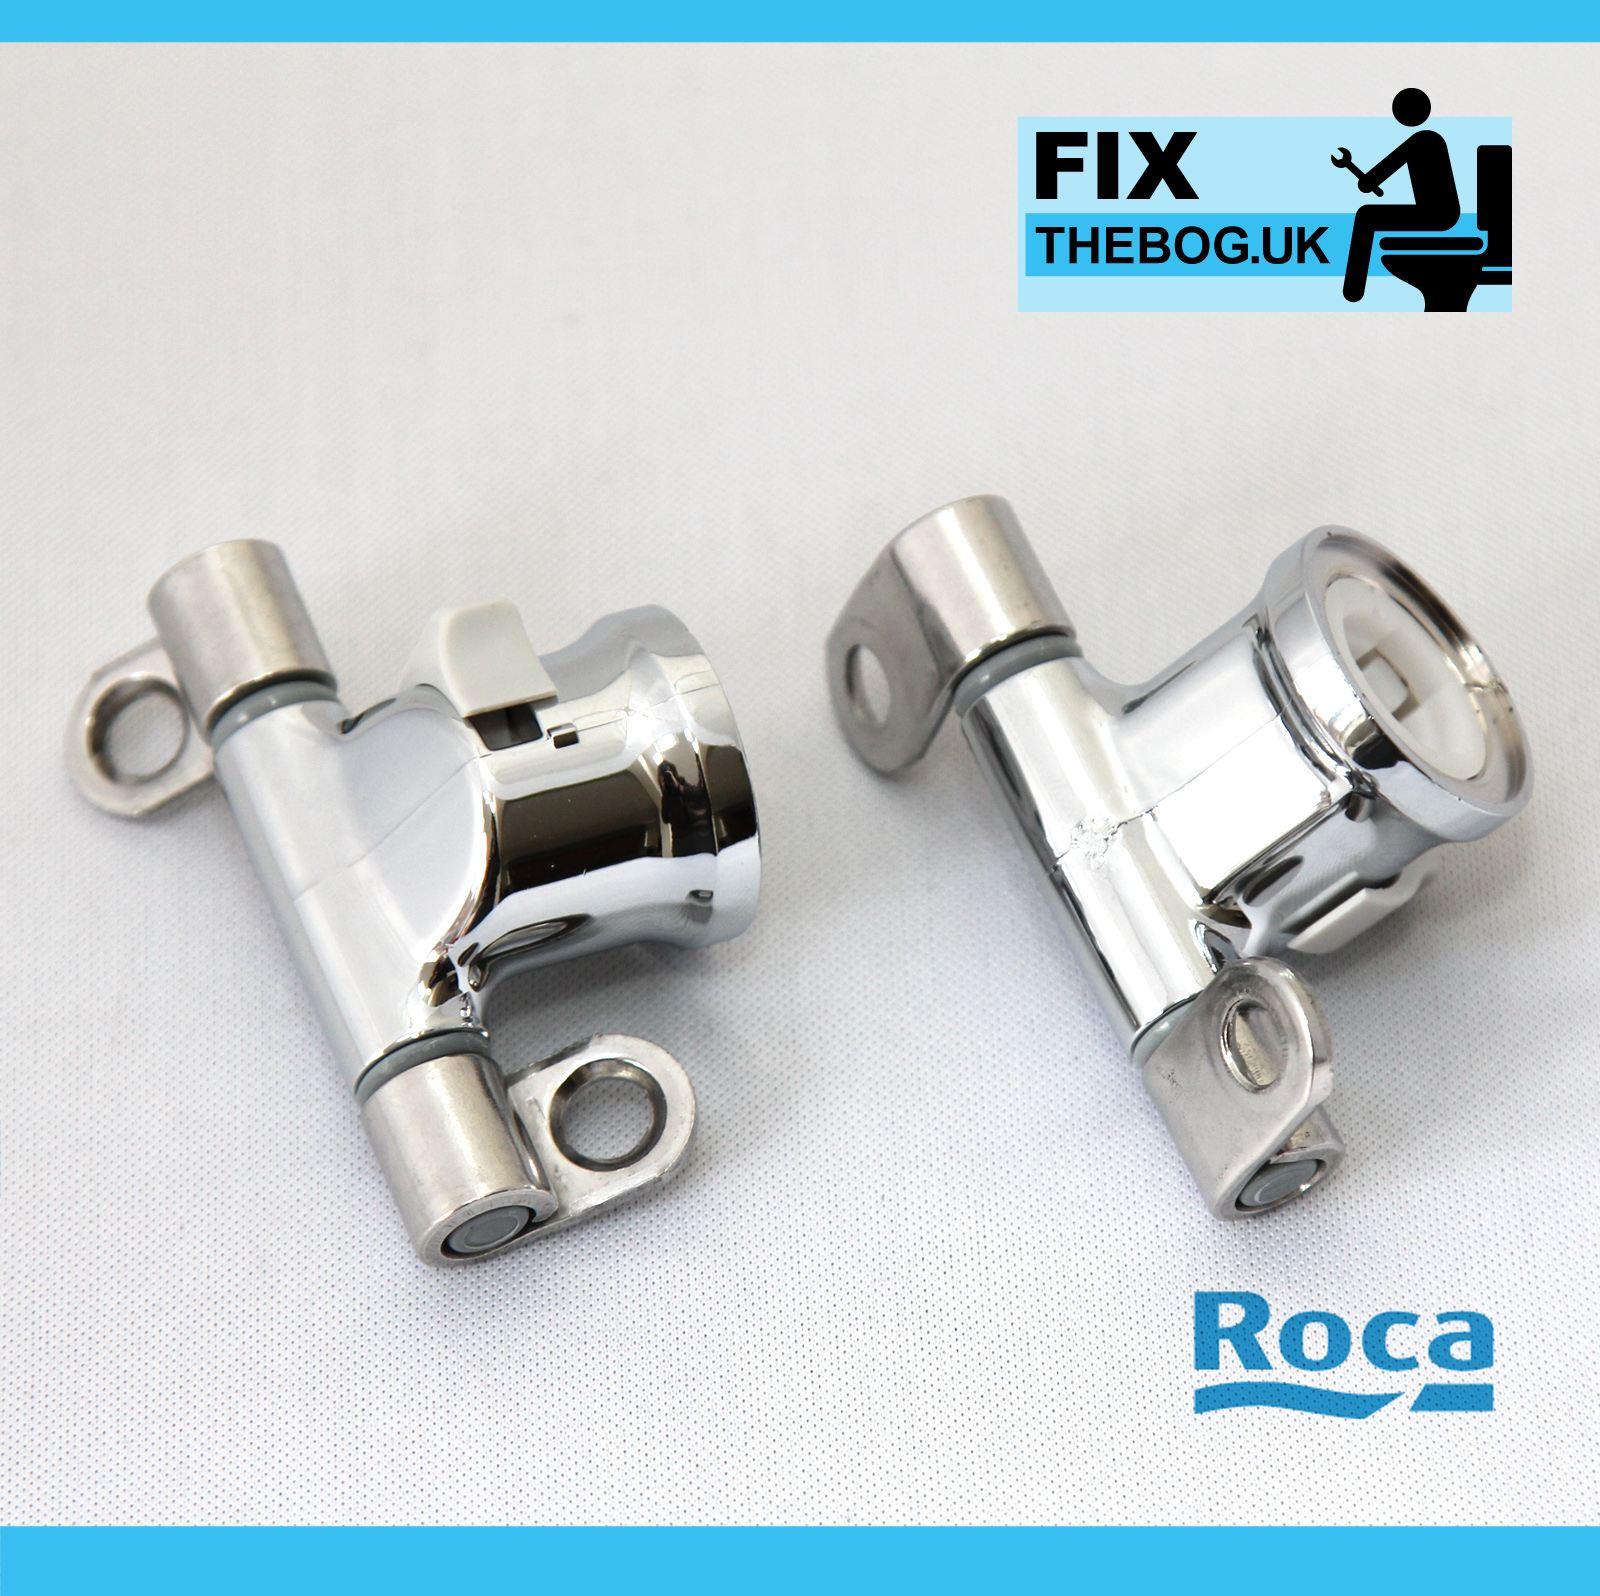 Roca Giralda Senso Removable Toilet Seat Hinge Set Easy